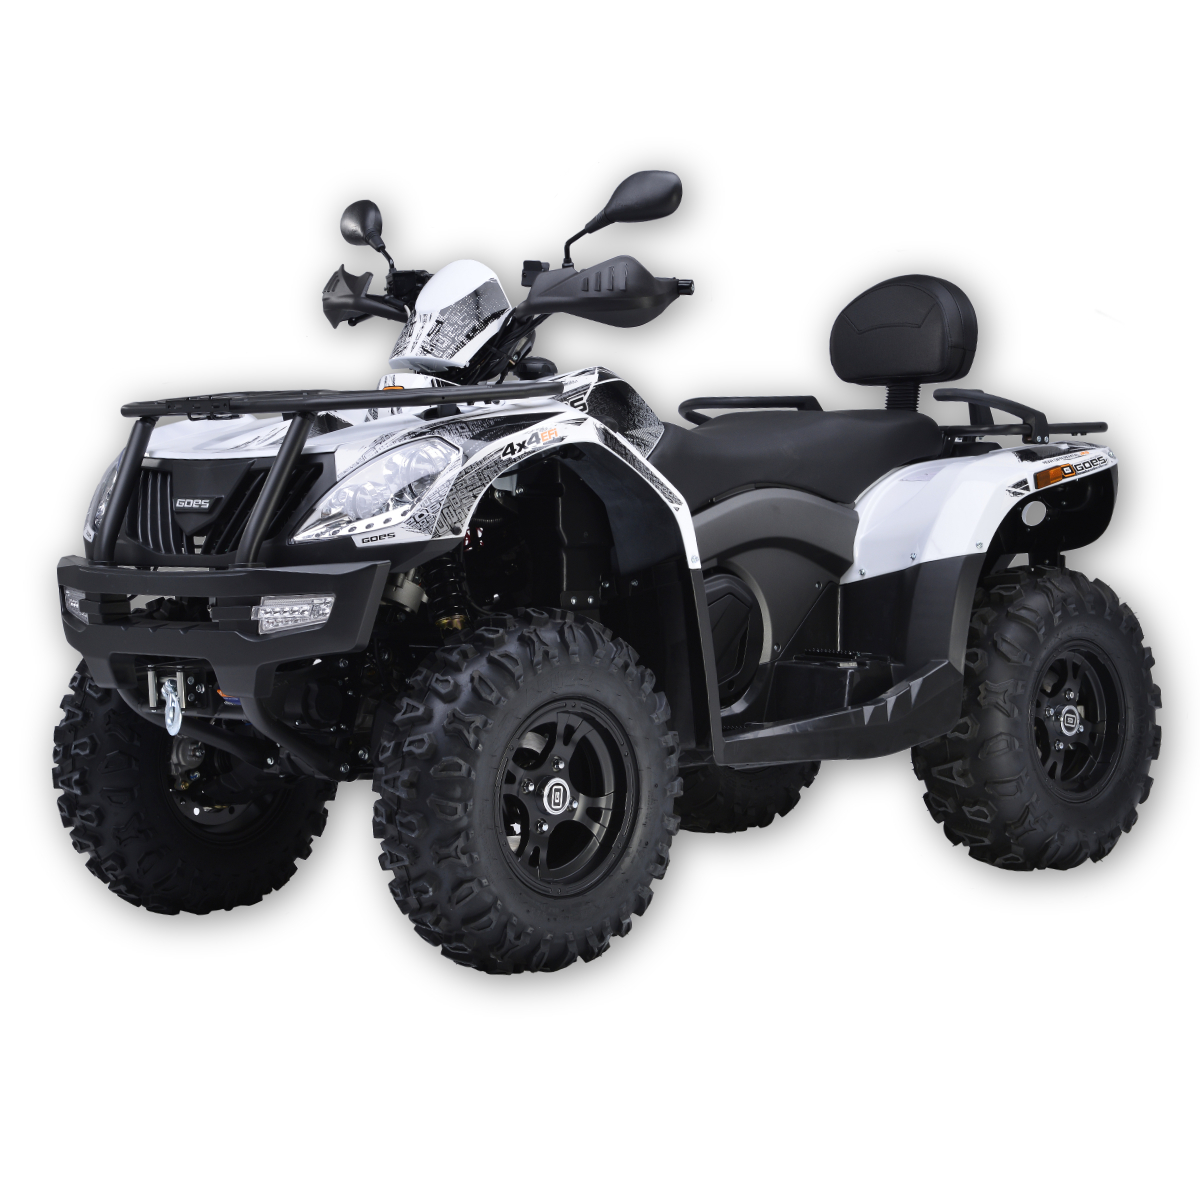 Goes Iron LTD 450i Max 4x4 EURO4